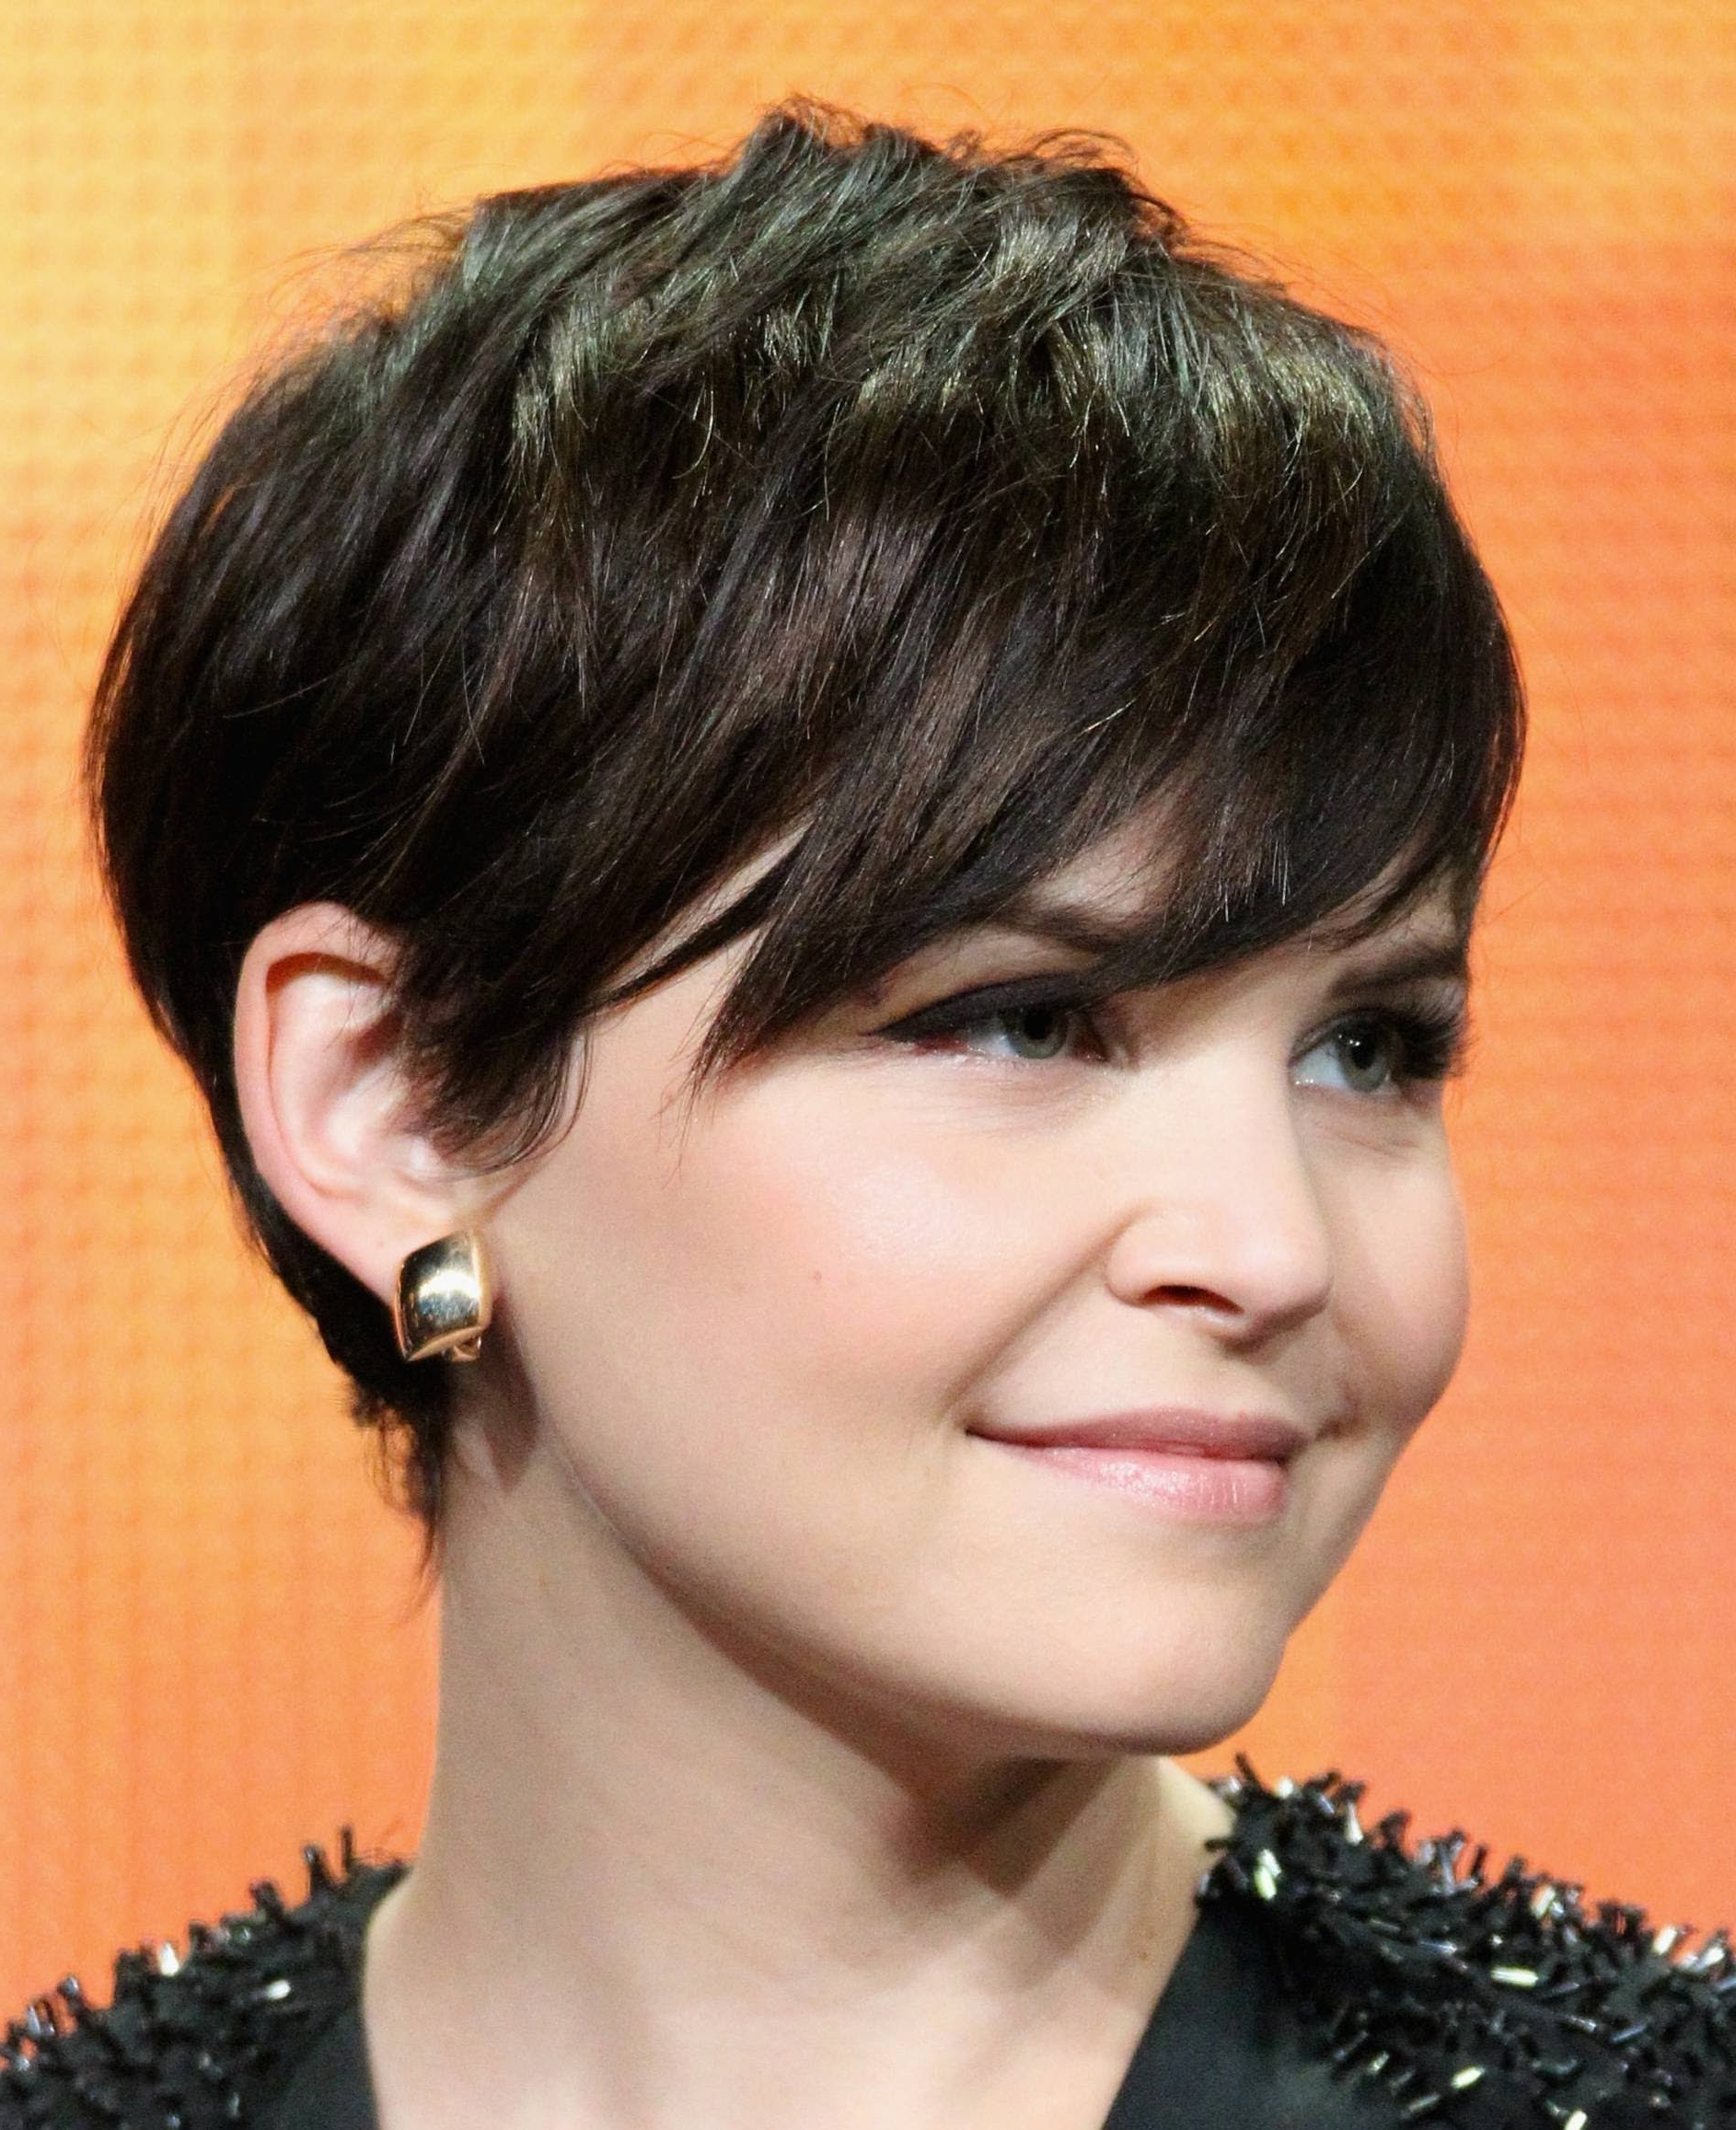 Ginnifer Goodwin Pixie Haircut Tutorial | The Salon Guy – Youtube With Most Up To Date Pixie Hairstyles For Men (Gallery 6 of 15)